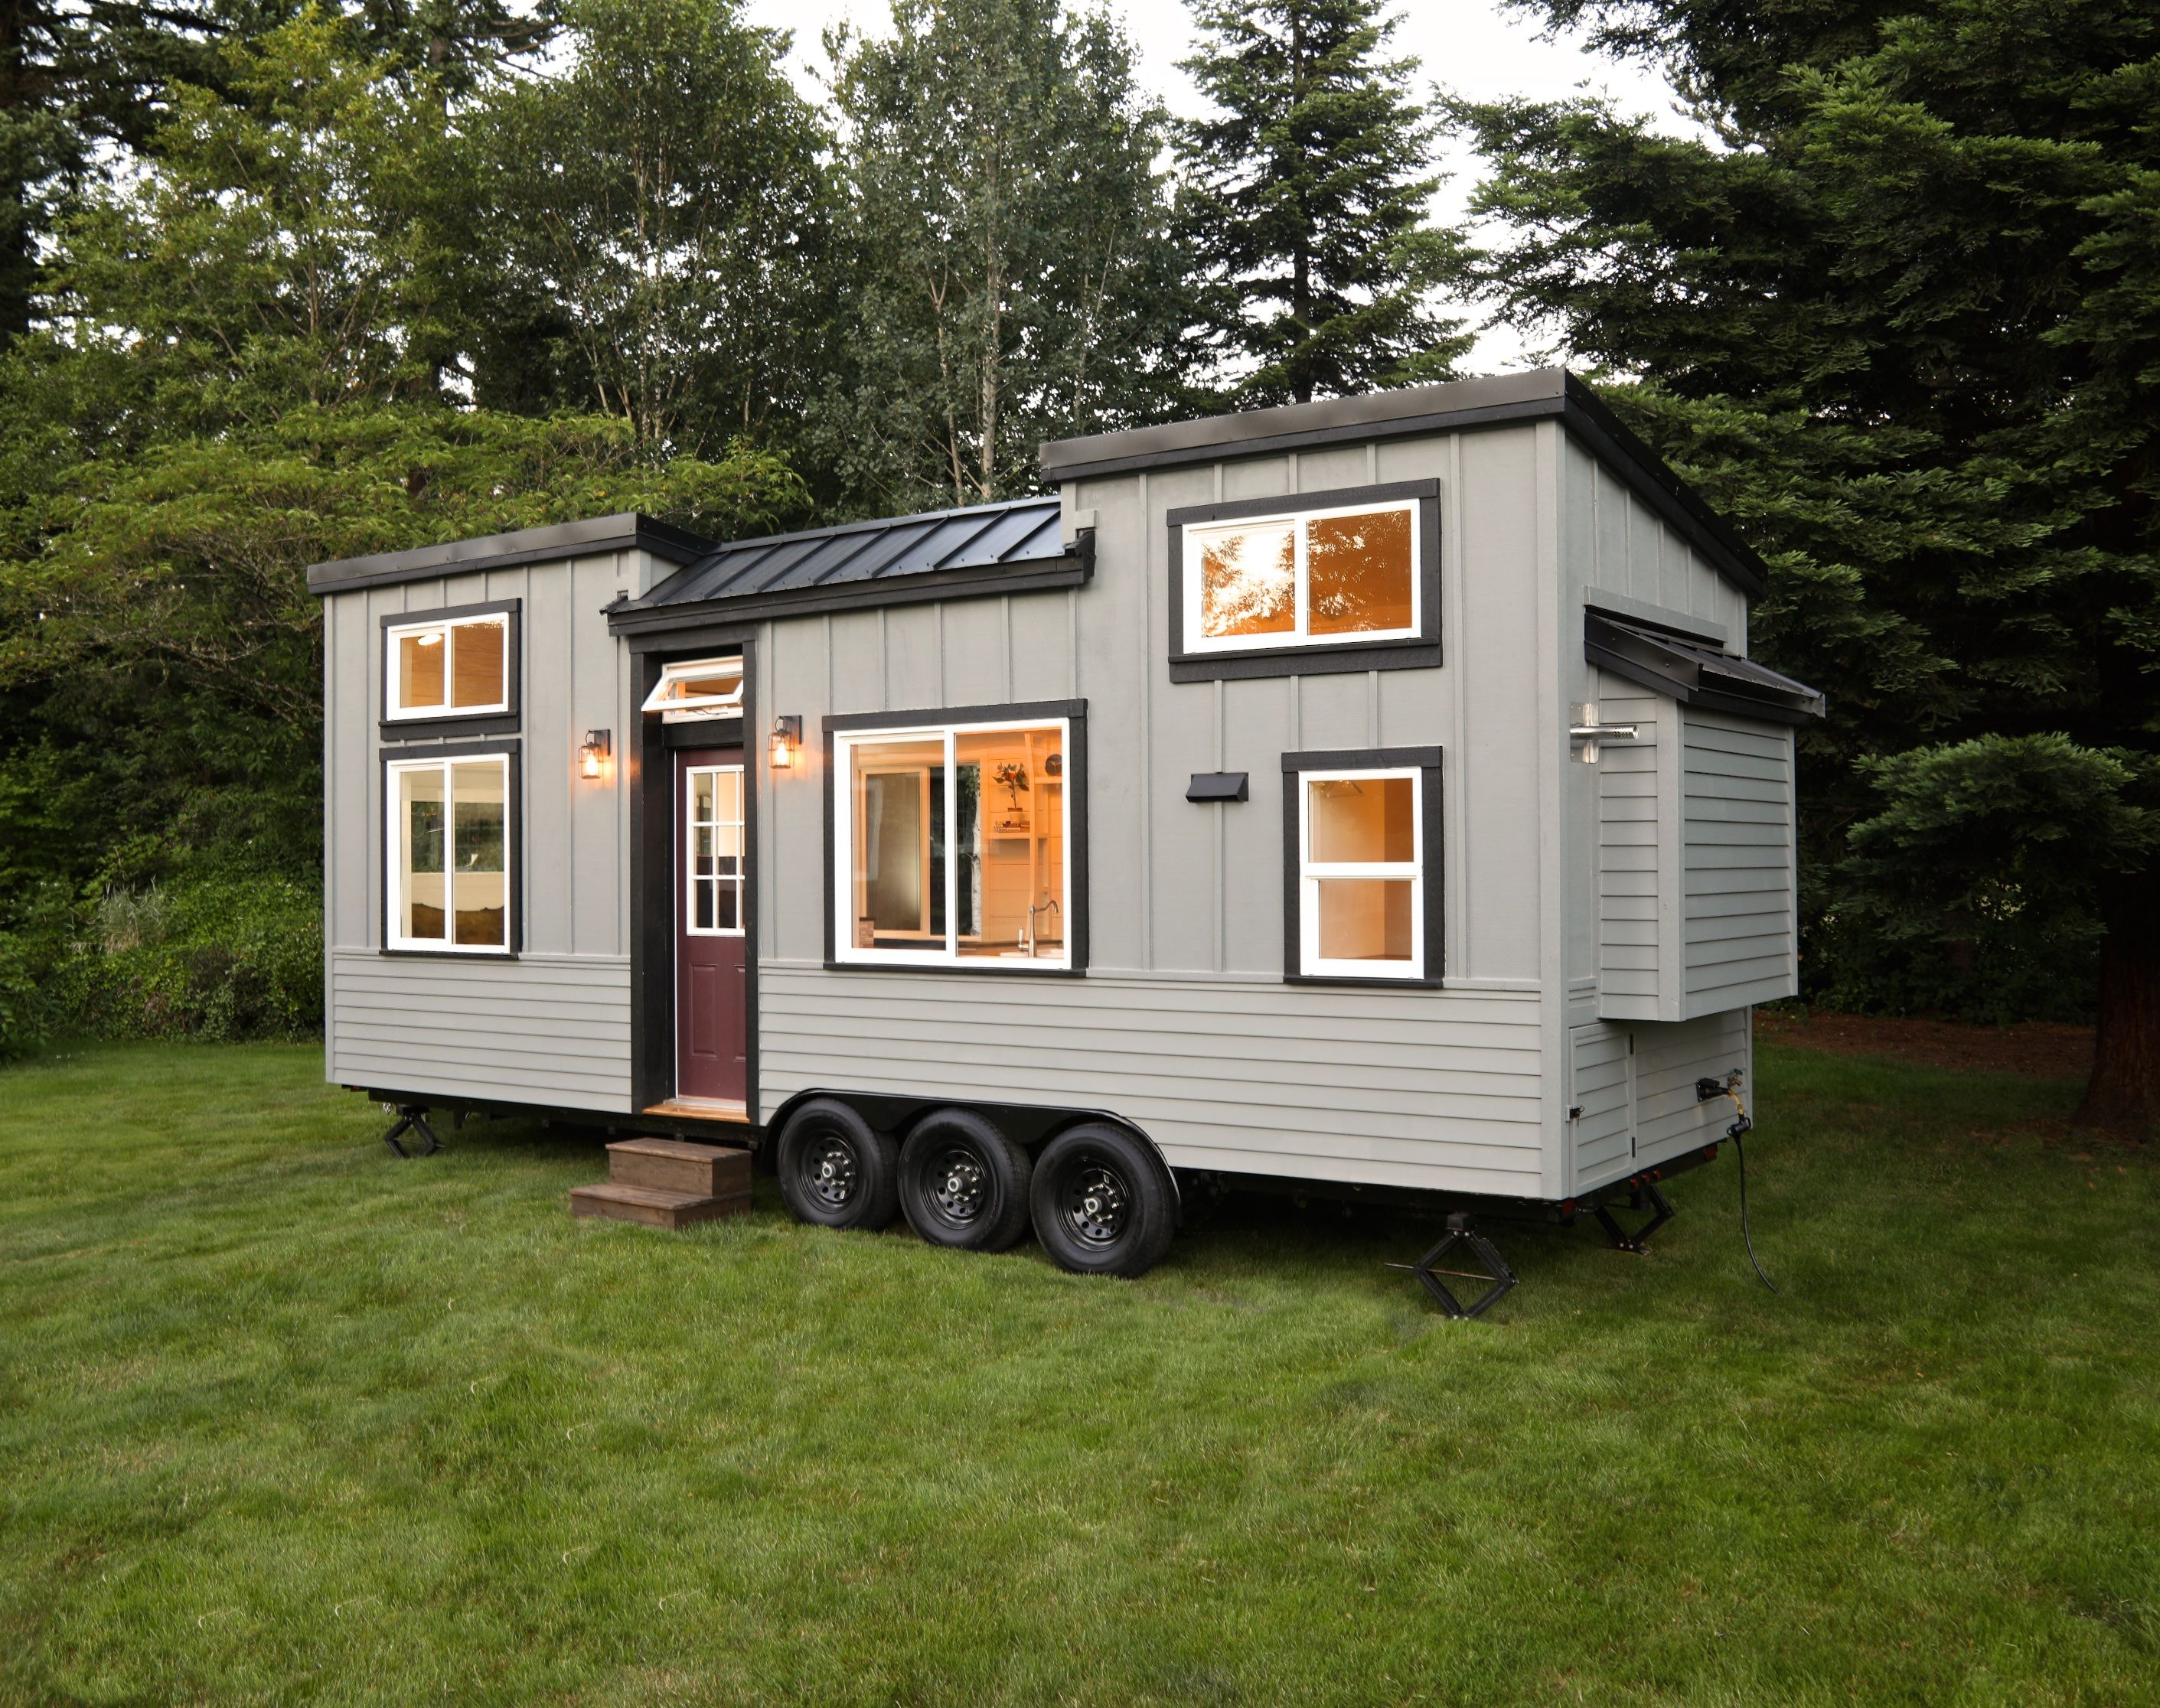 Pacific Pioneer Tiny House For Sale In Portland Oregon Tiny House Listings Tiny House Trailer Container House Plans Container House